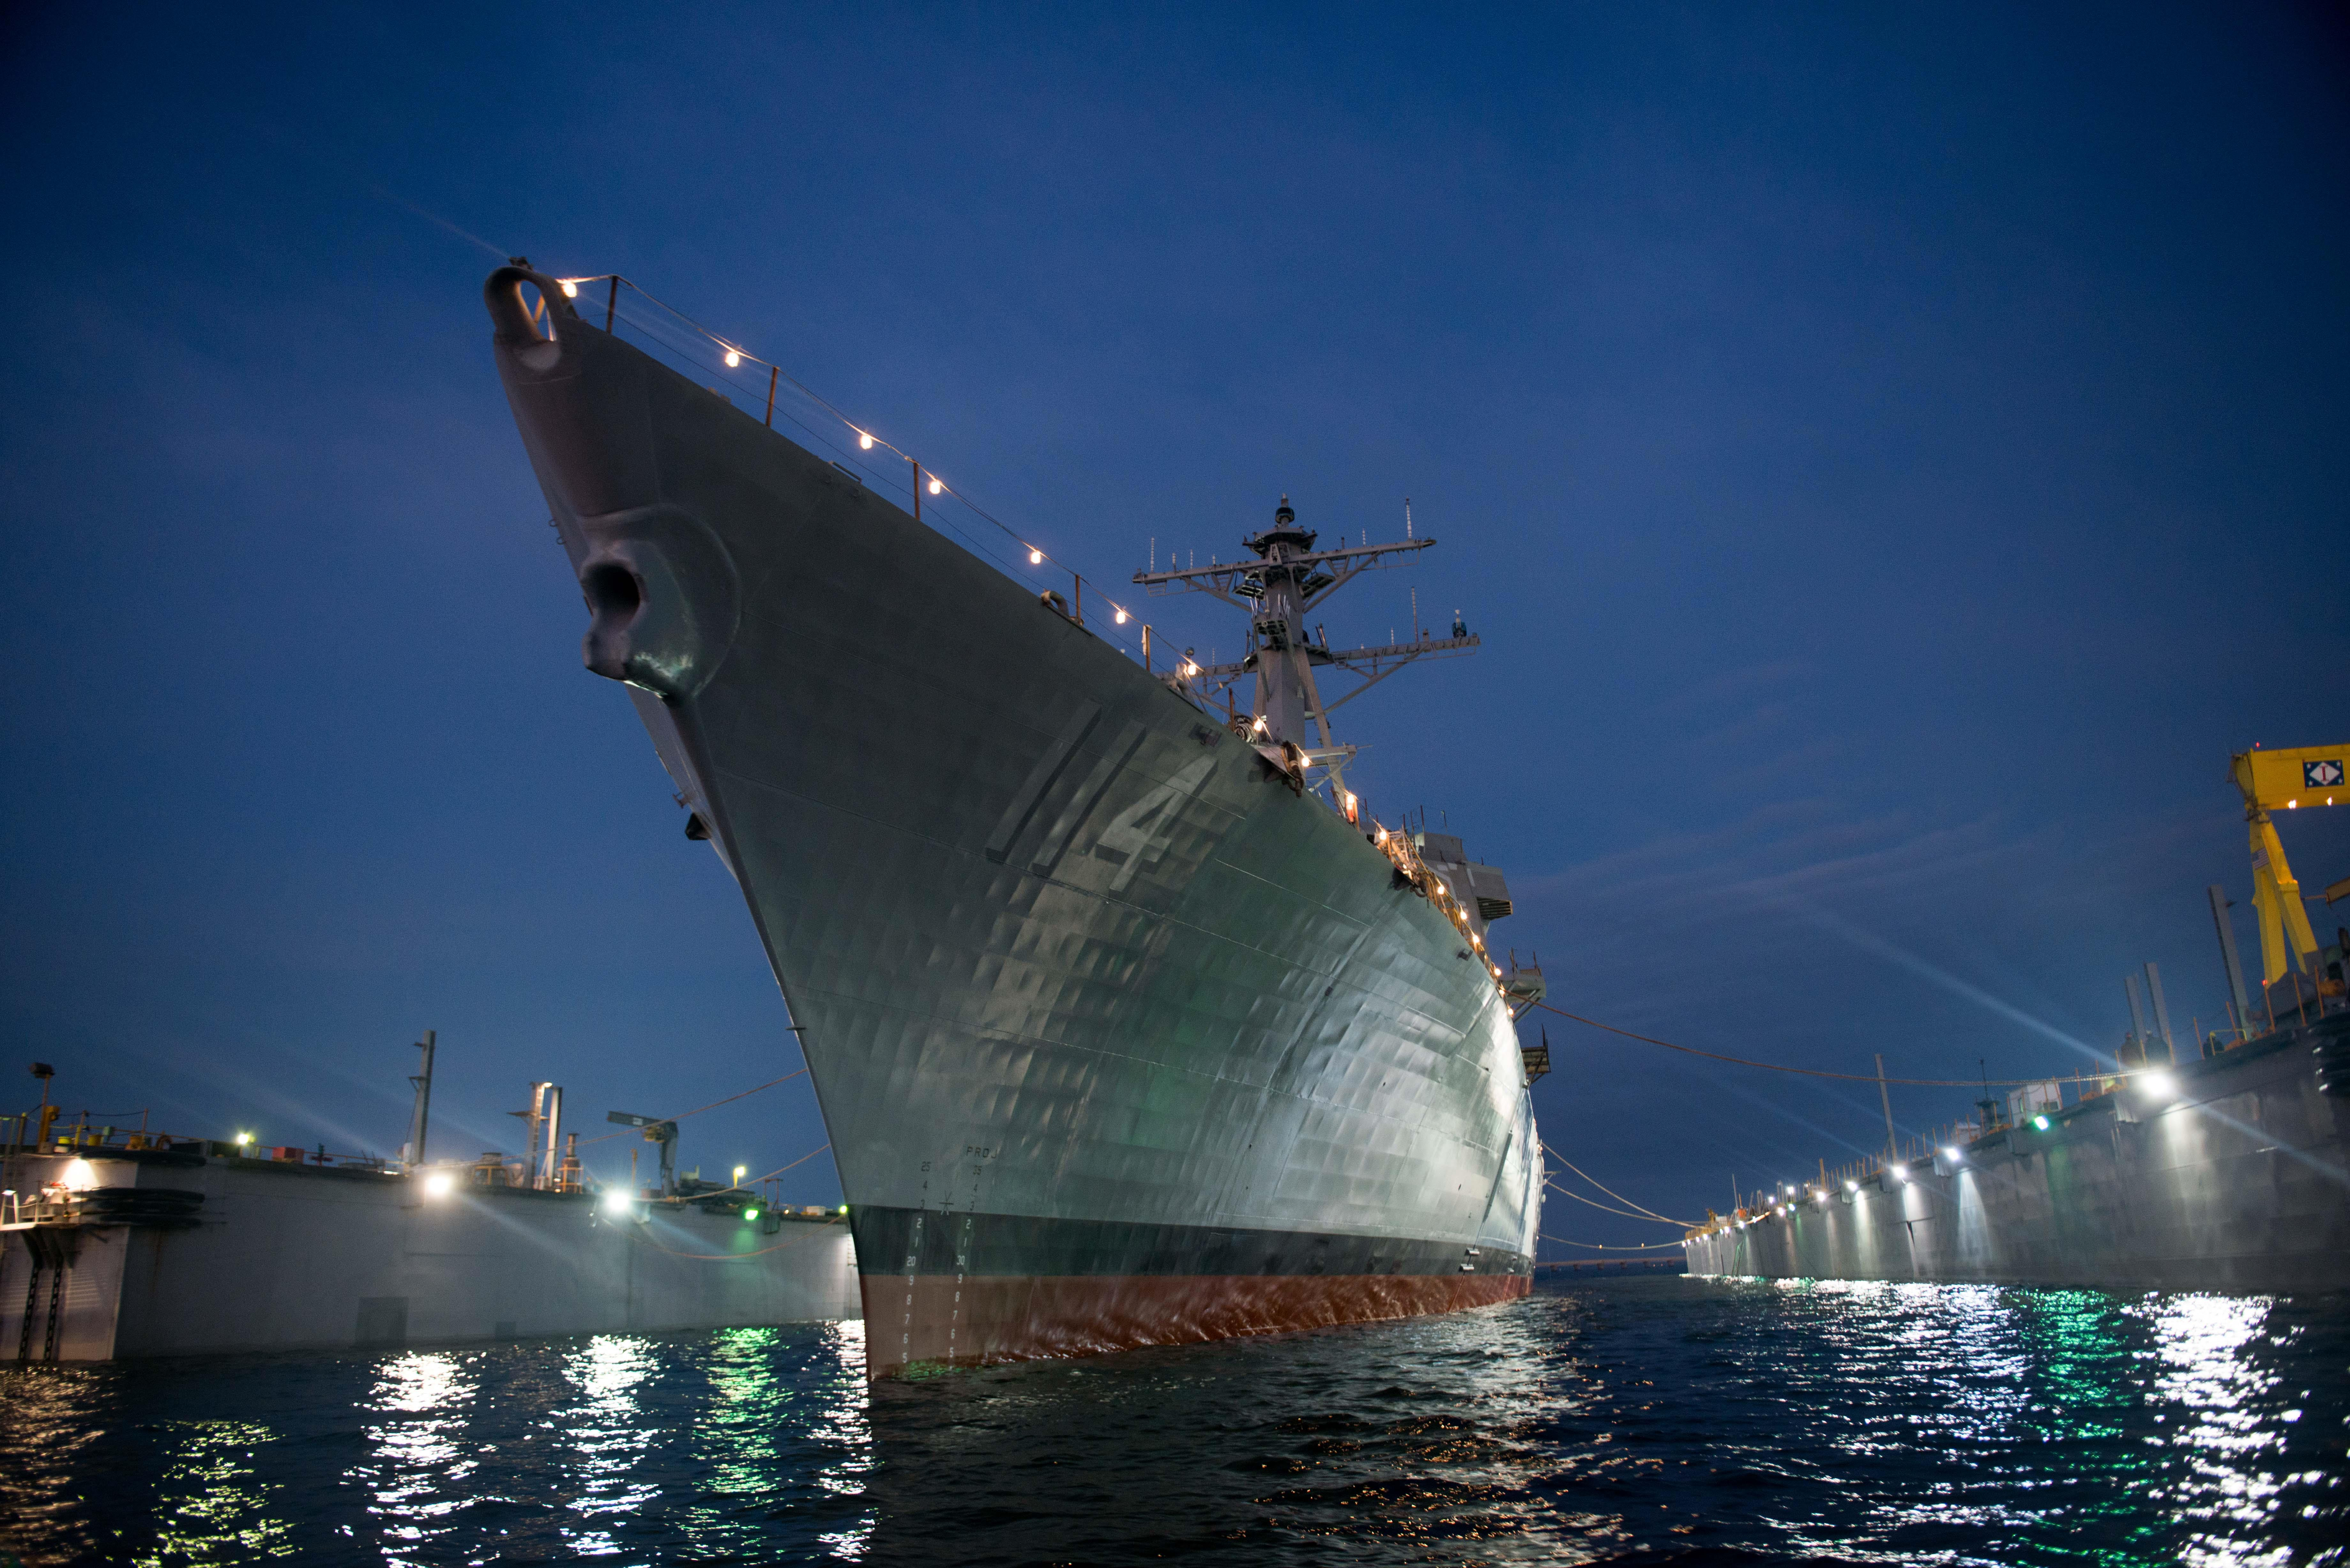 Ralph Johnson (DDG-114) launching at the Huntington Ingalls Industries shipyard on Dec. 12, 2015. HII Photo